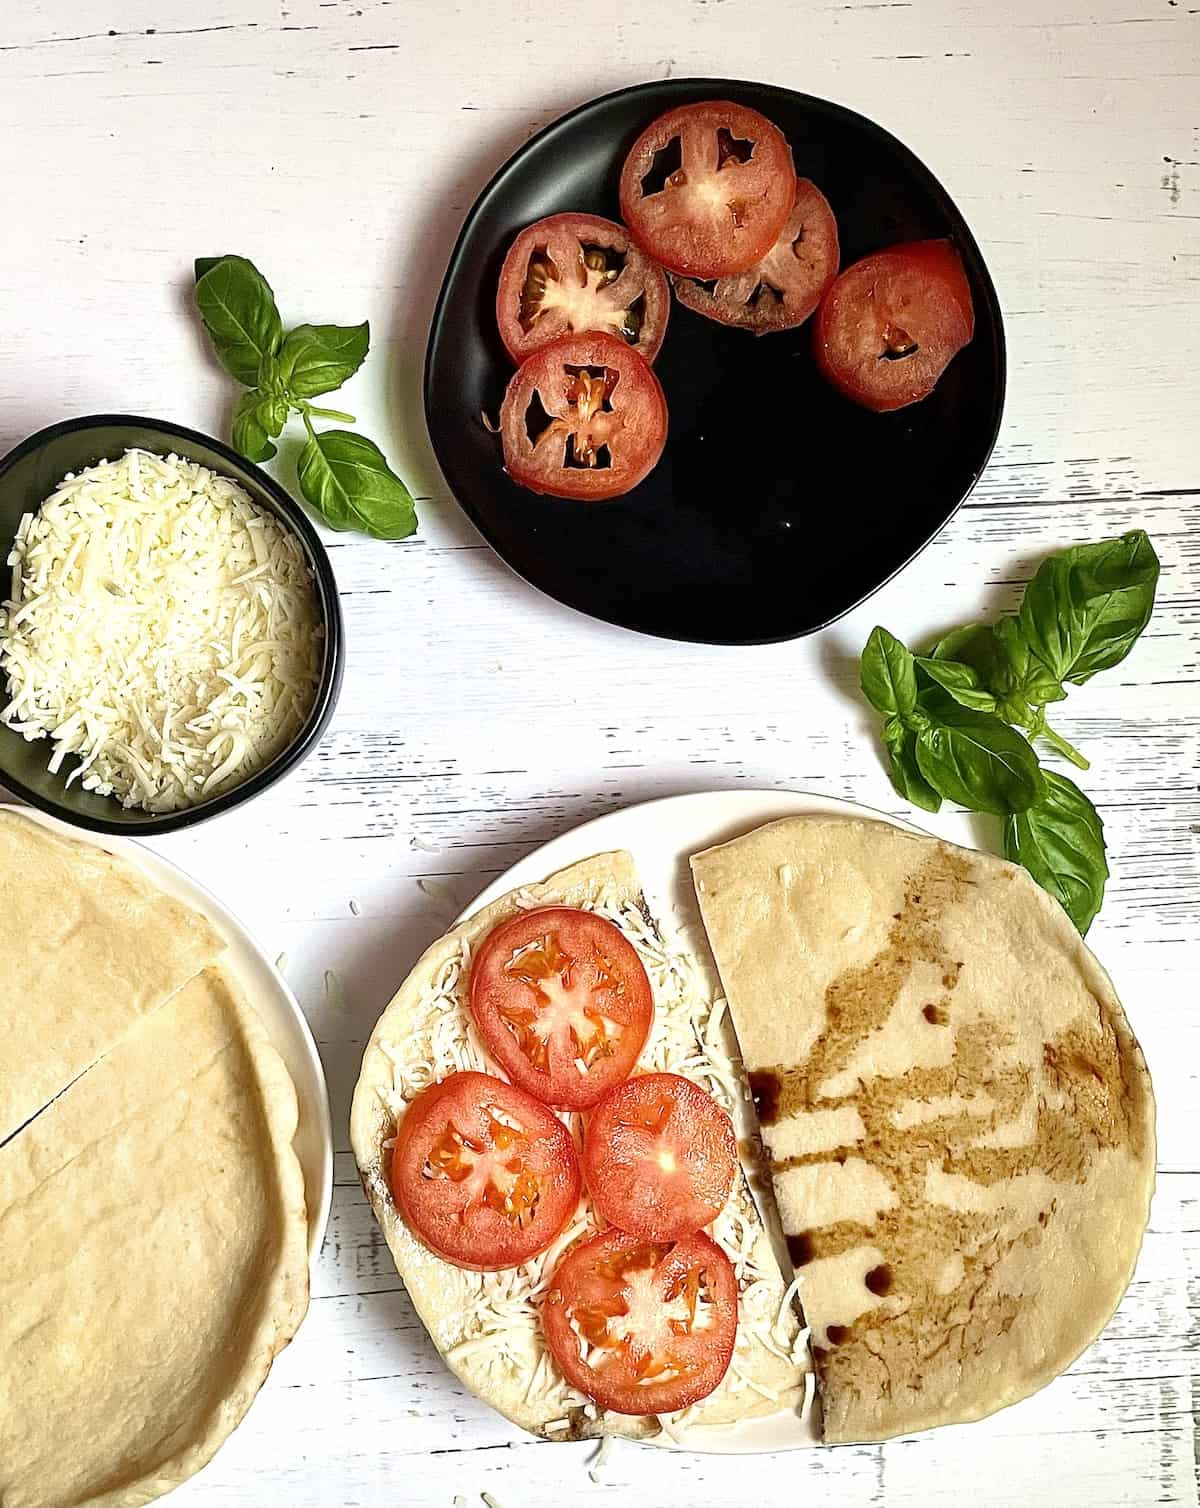 naan bread covered with mozzarella and tomatoes